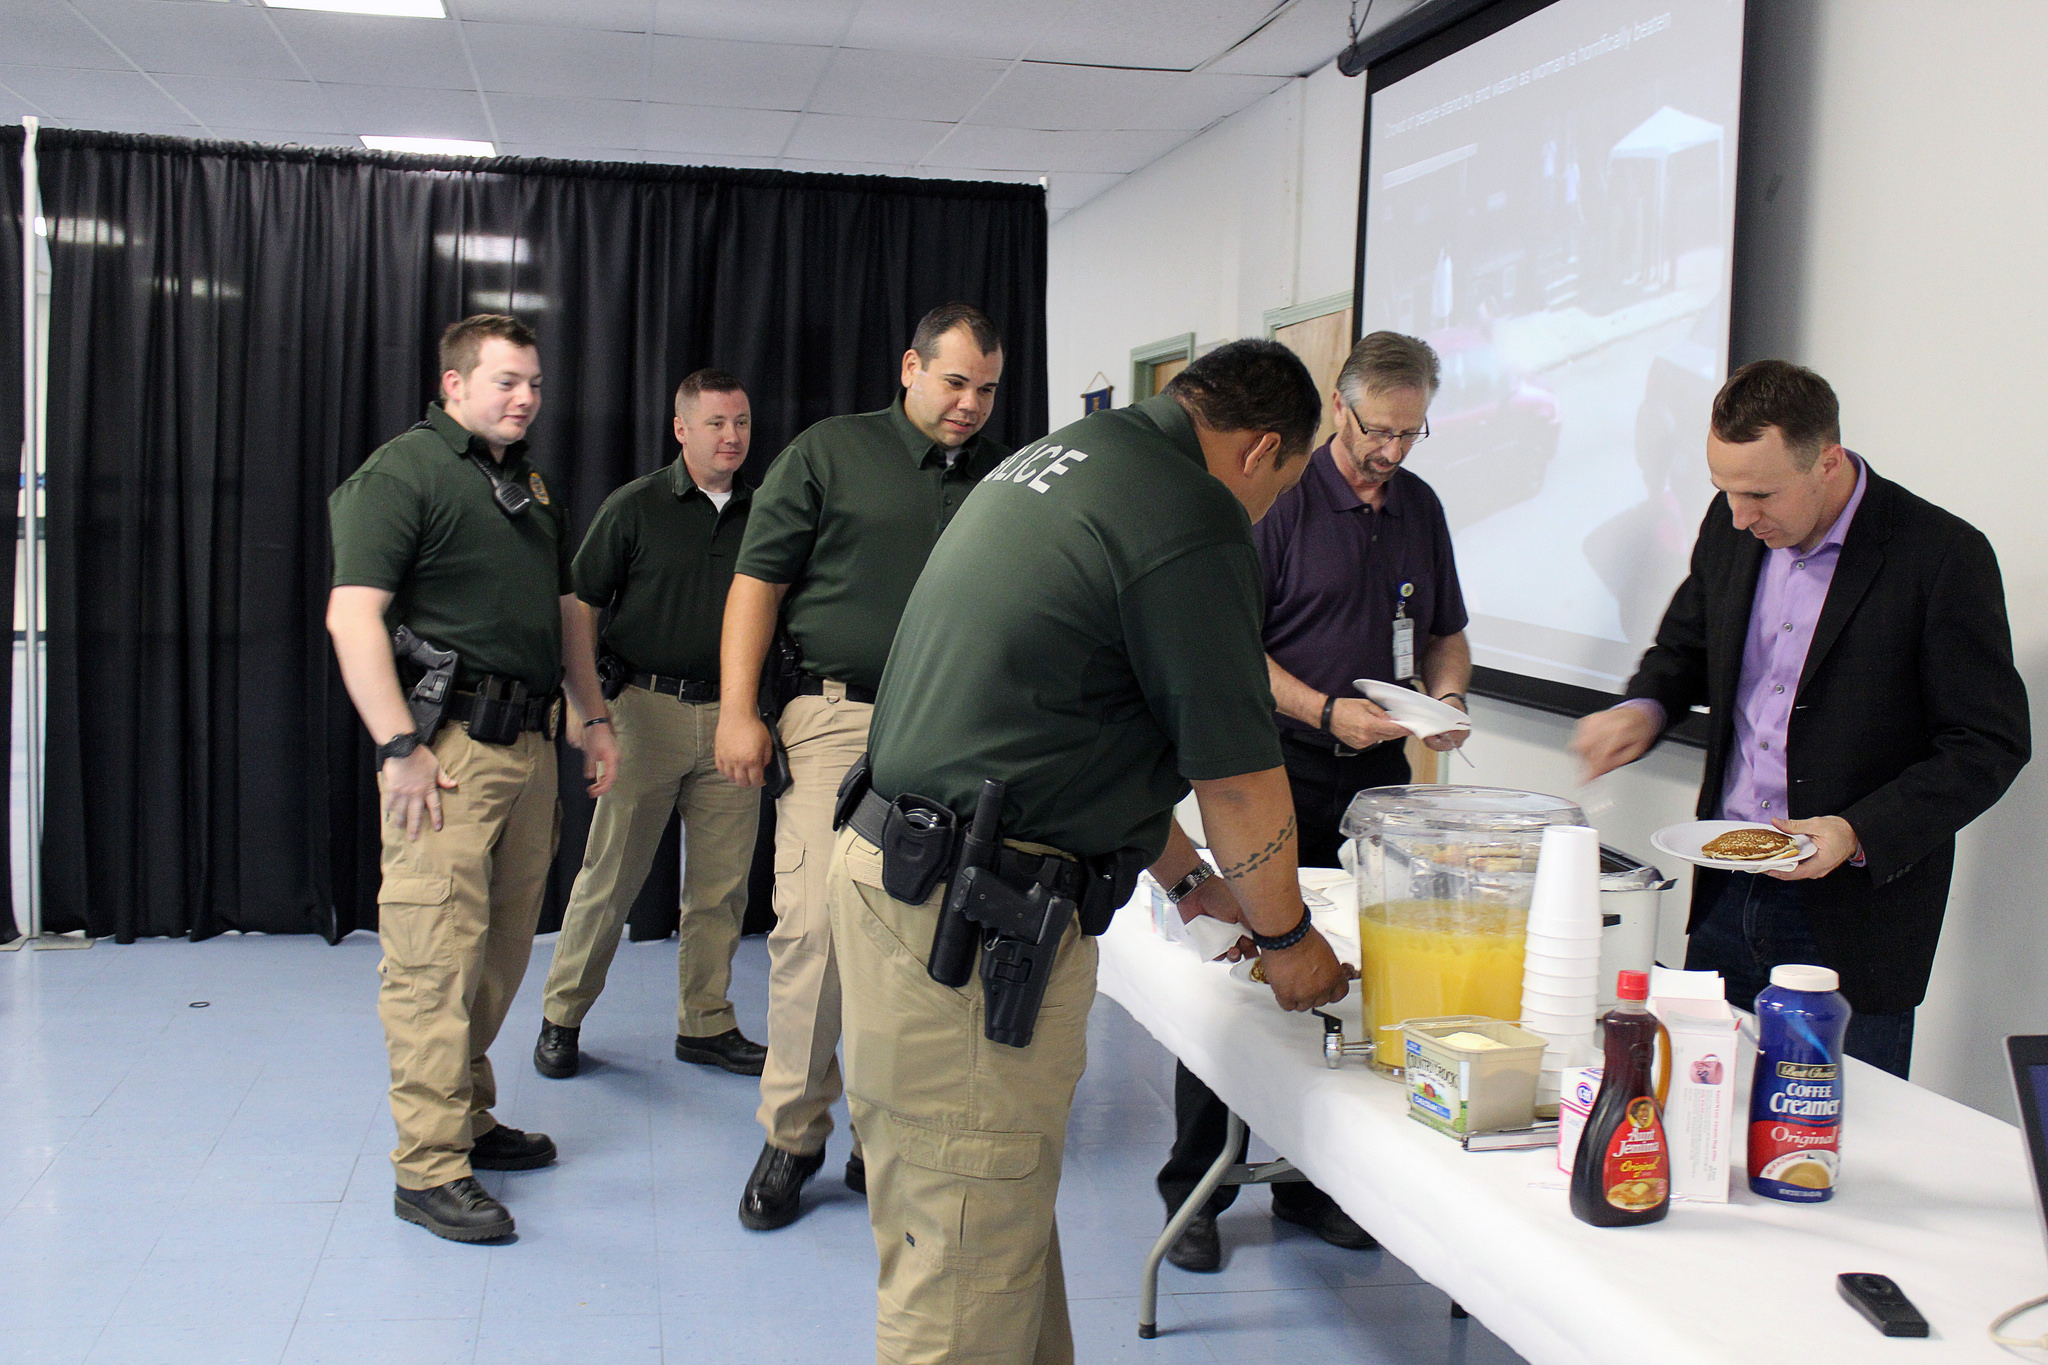 ON Counseling Center hosts men's breakfast to raise domestic violence awareness